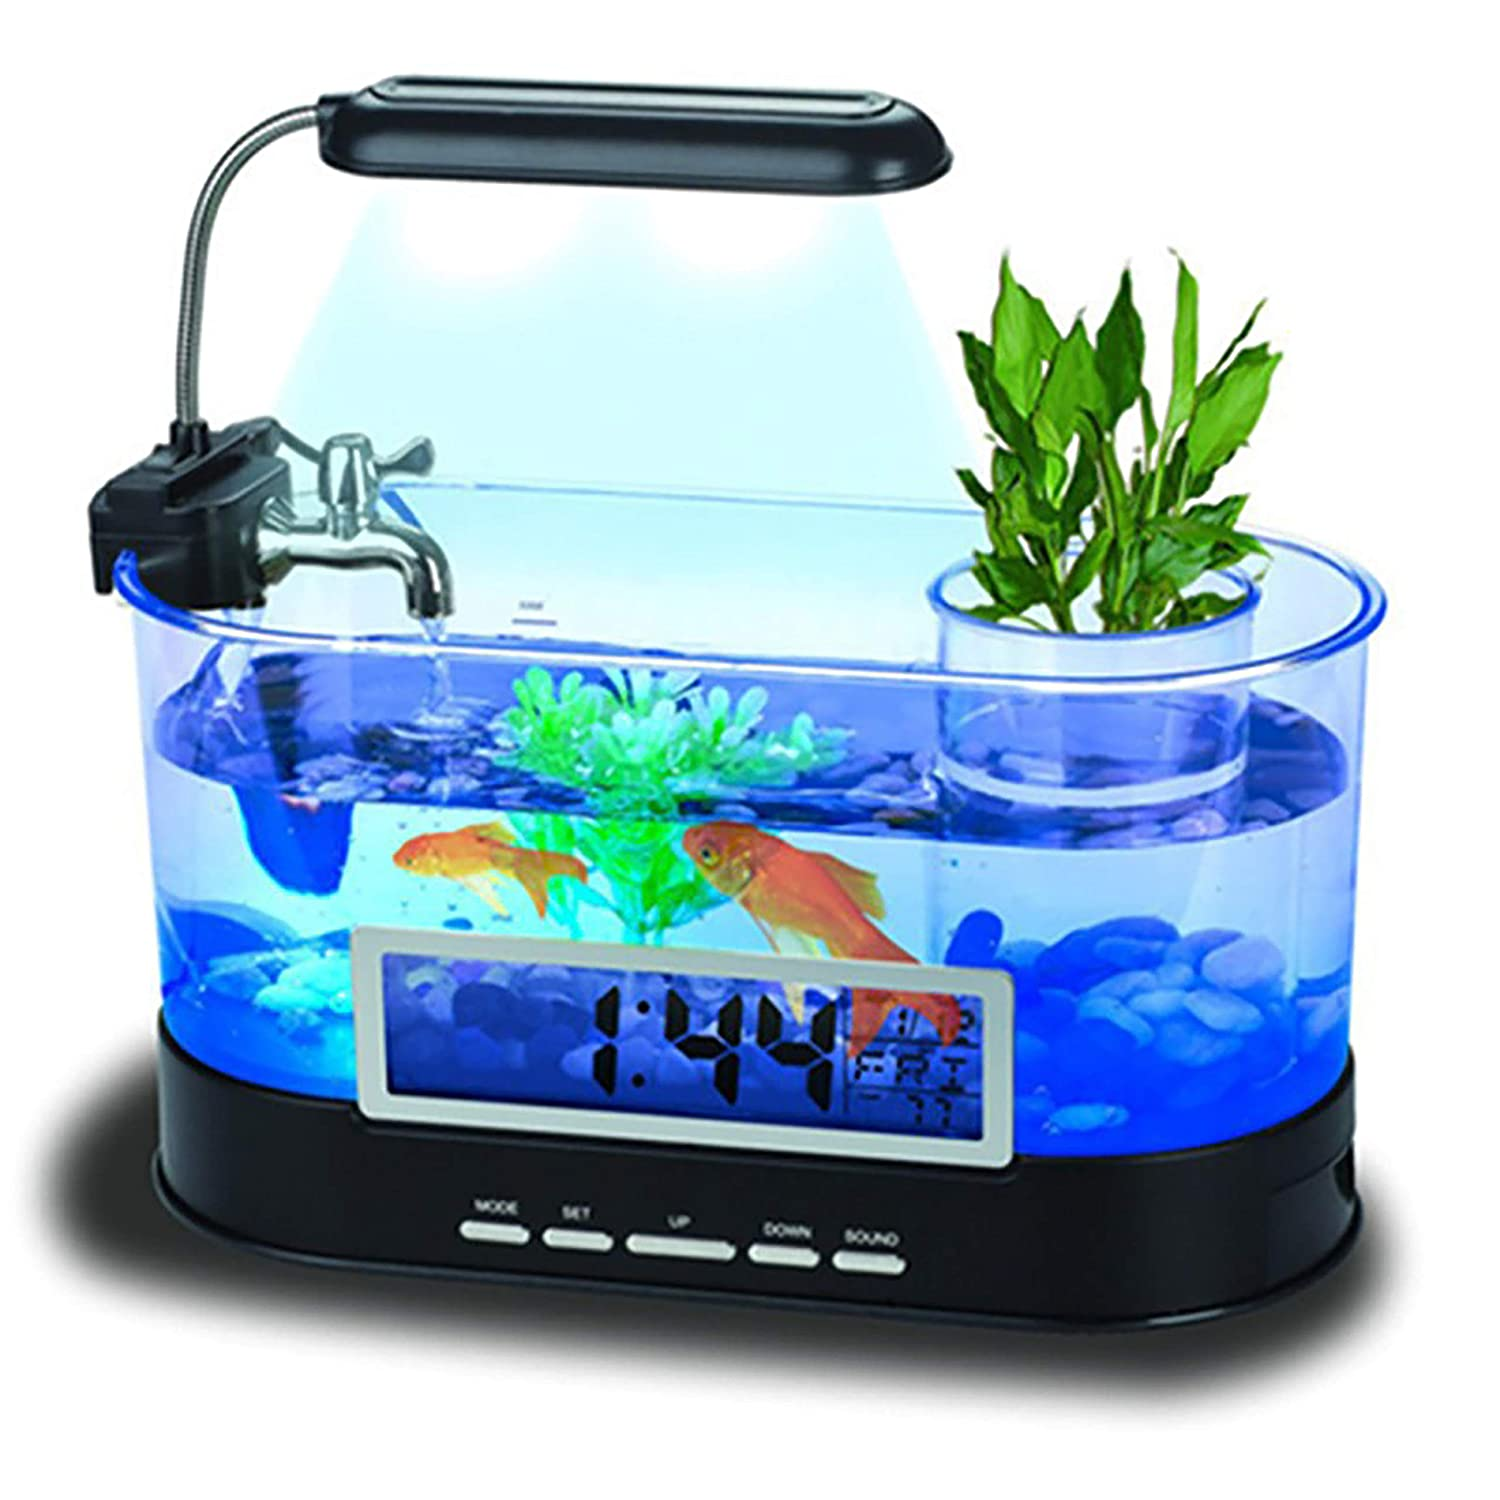 Black JIANGU Ecological home ultra white acrylic fish tank aquarium goldfish tank new smart USB desktop fish tank mini creative-black